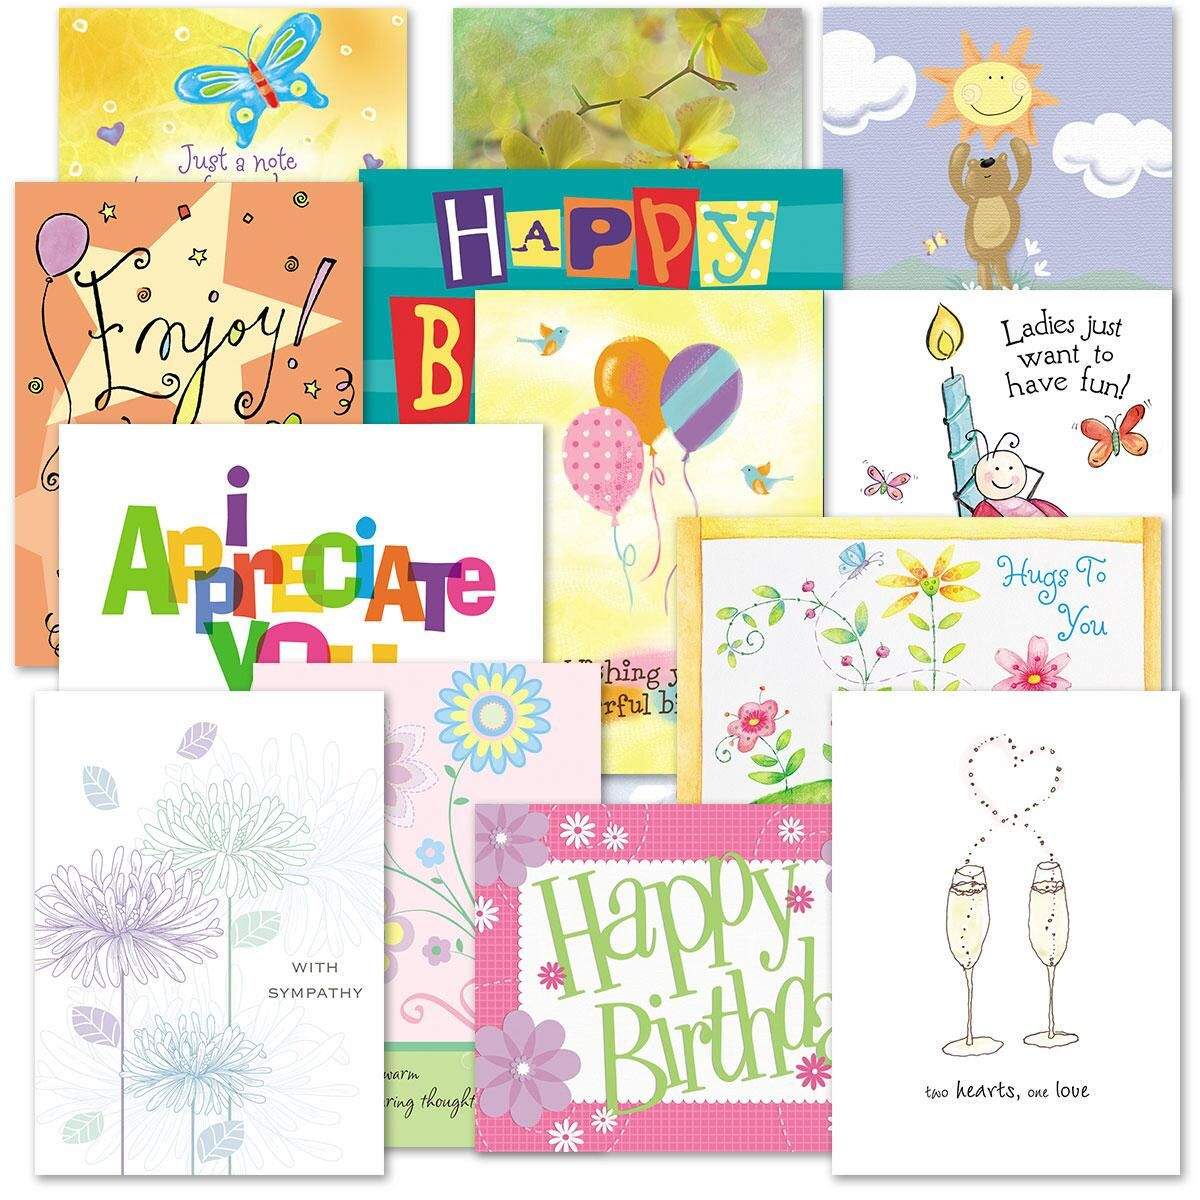 Mega All Occasion Cards Value Pack - Set of 80